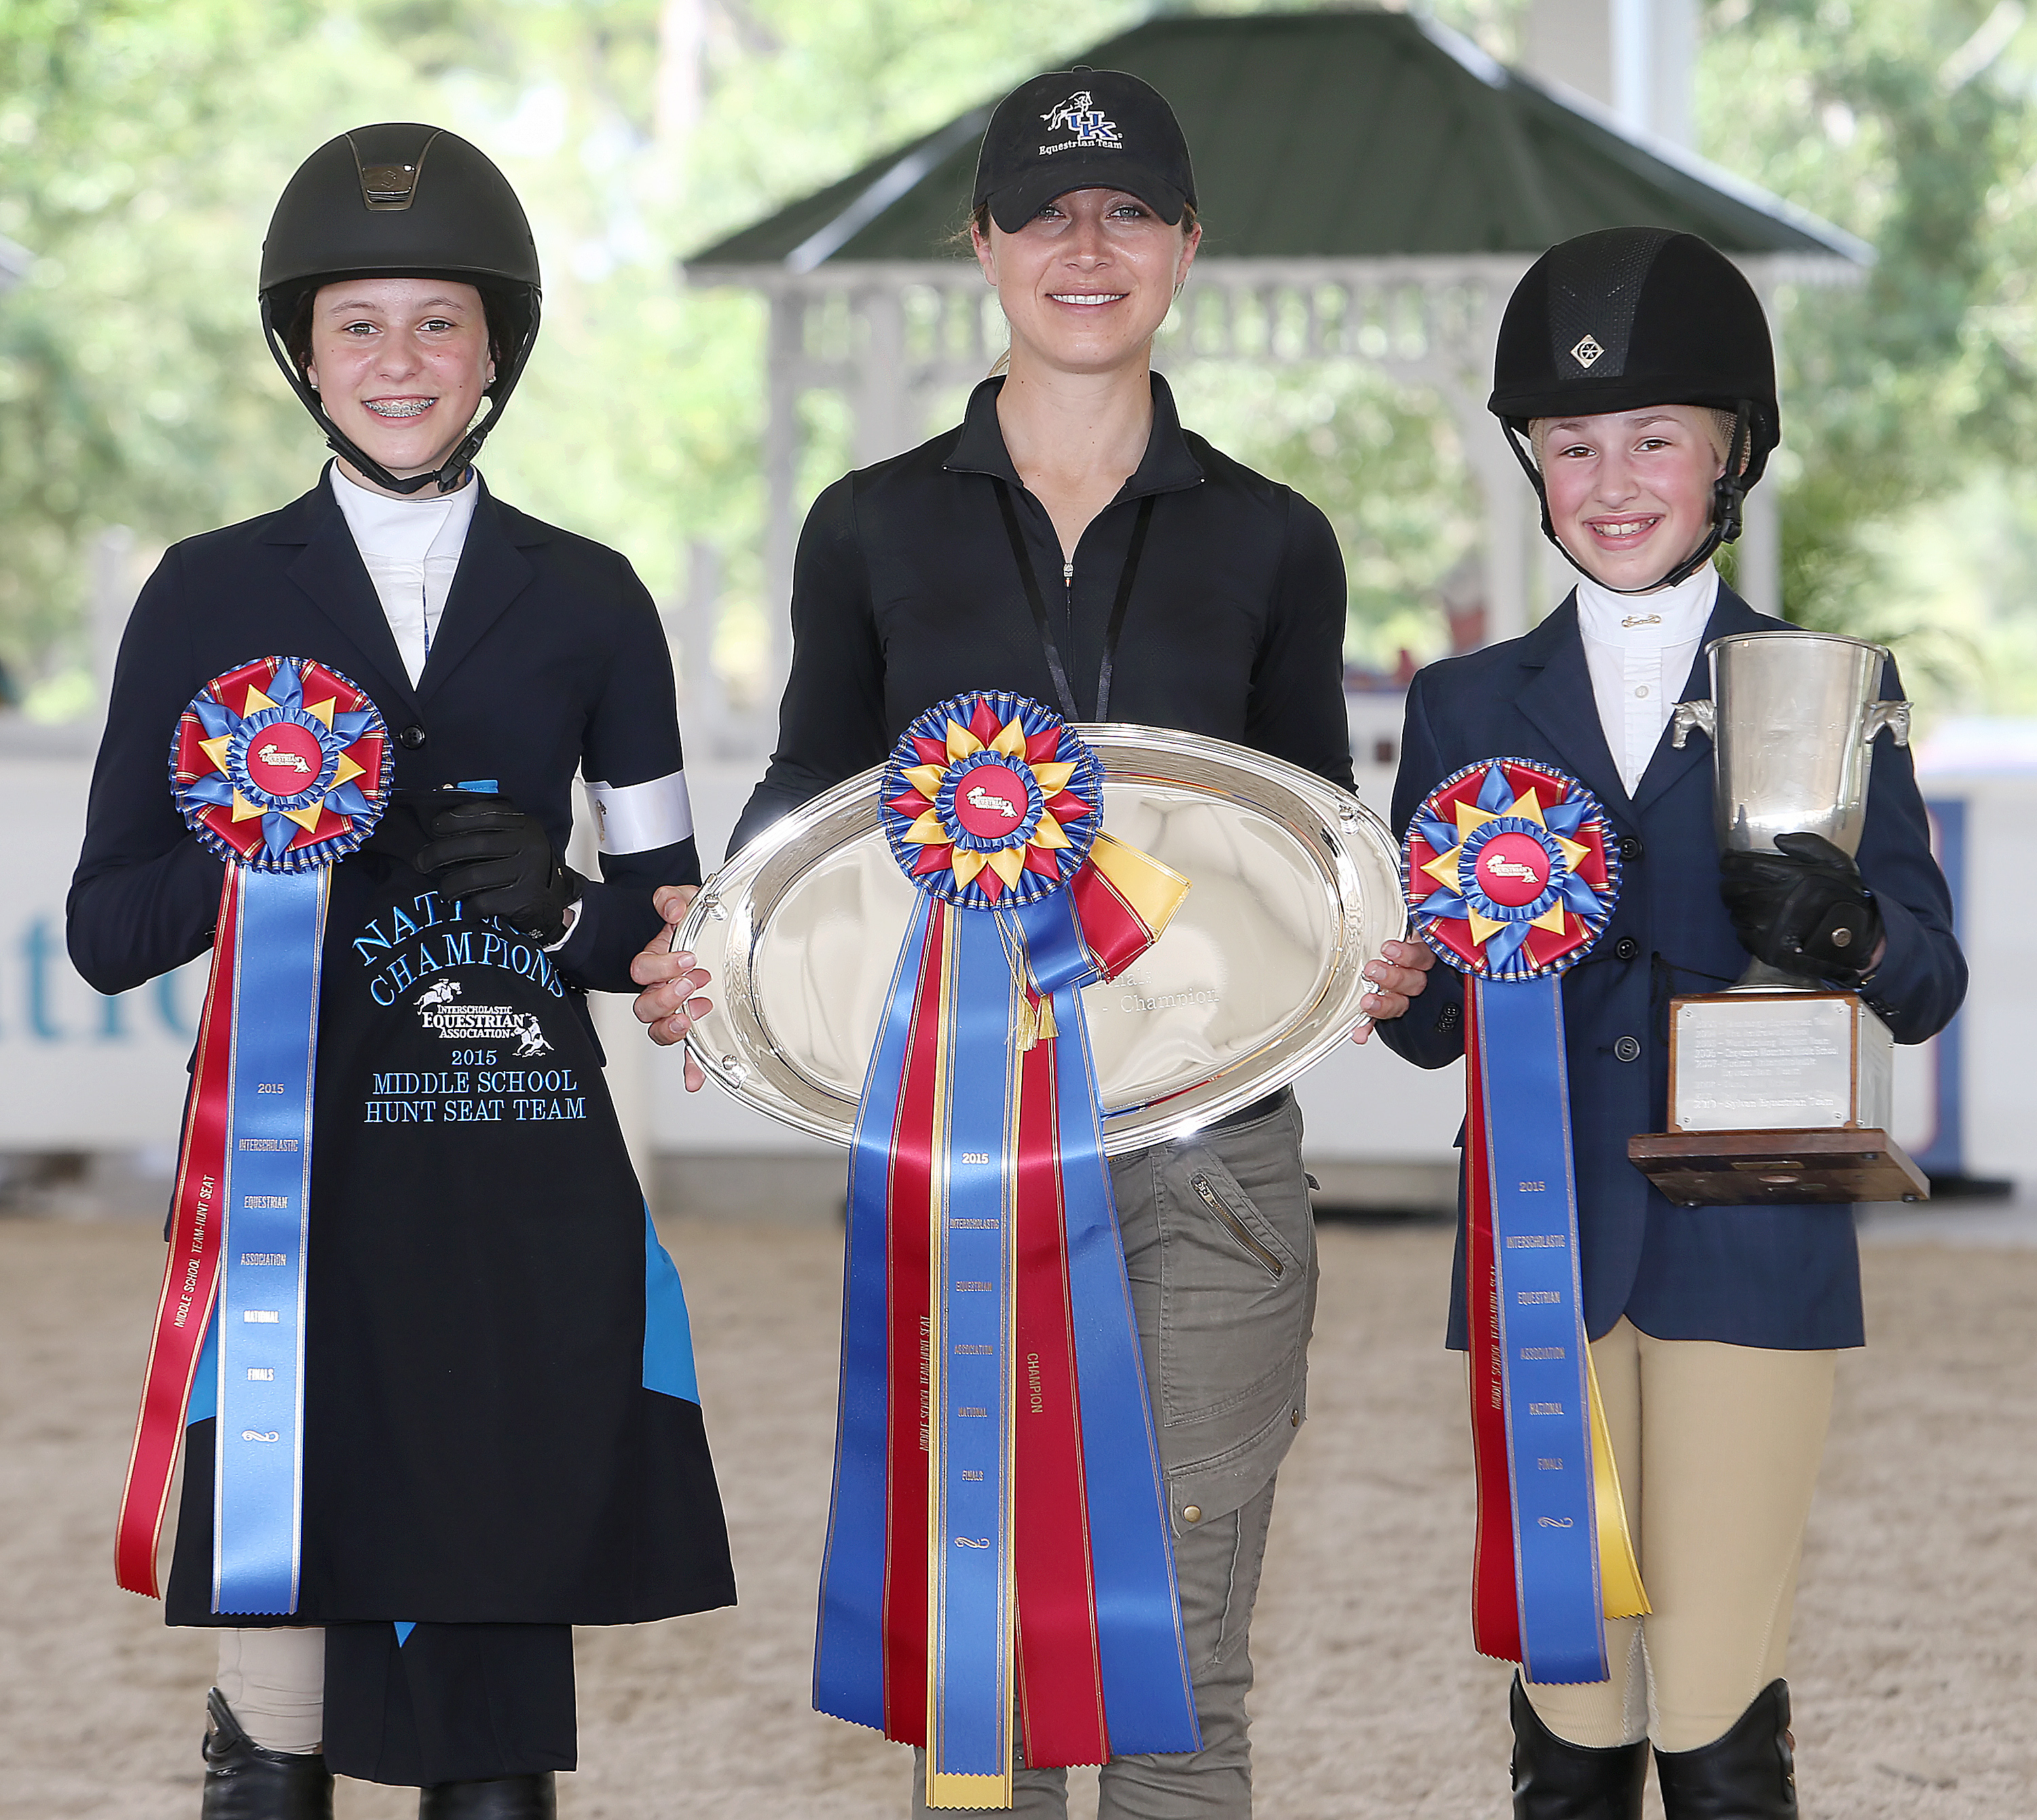 Liftoff Equestrian Team - Versailles, Kentucky, IEA 2015 Middle School Championship Team left to right: Isabela de Sousa, Diana Conlon (coach), Genevieve Heyn